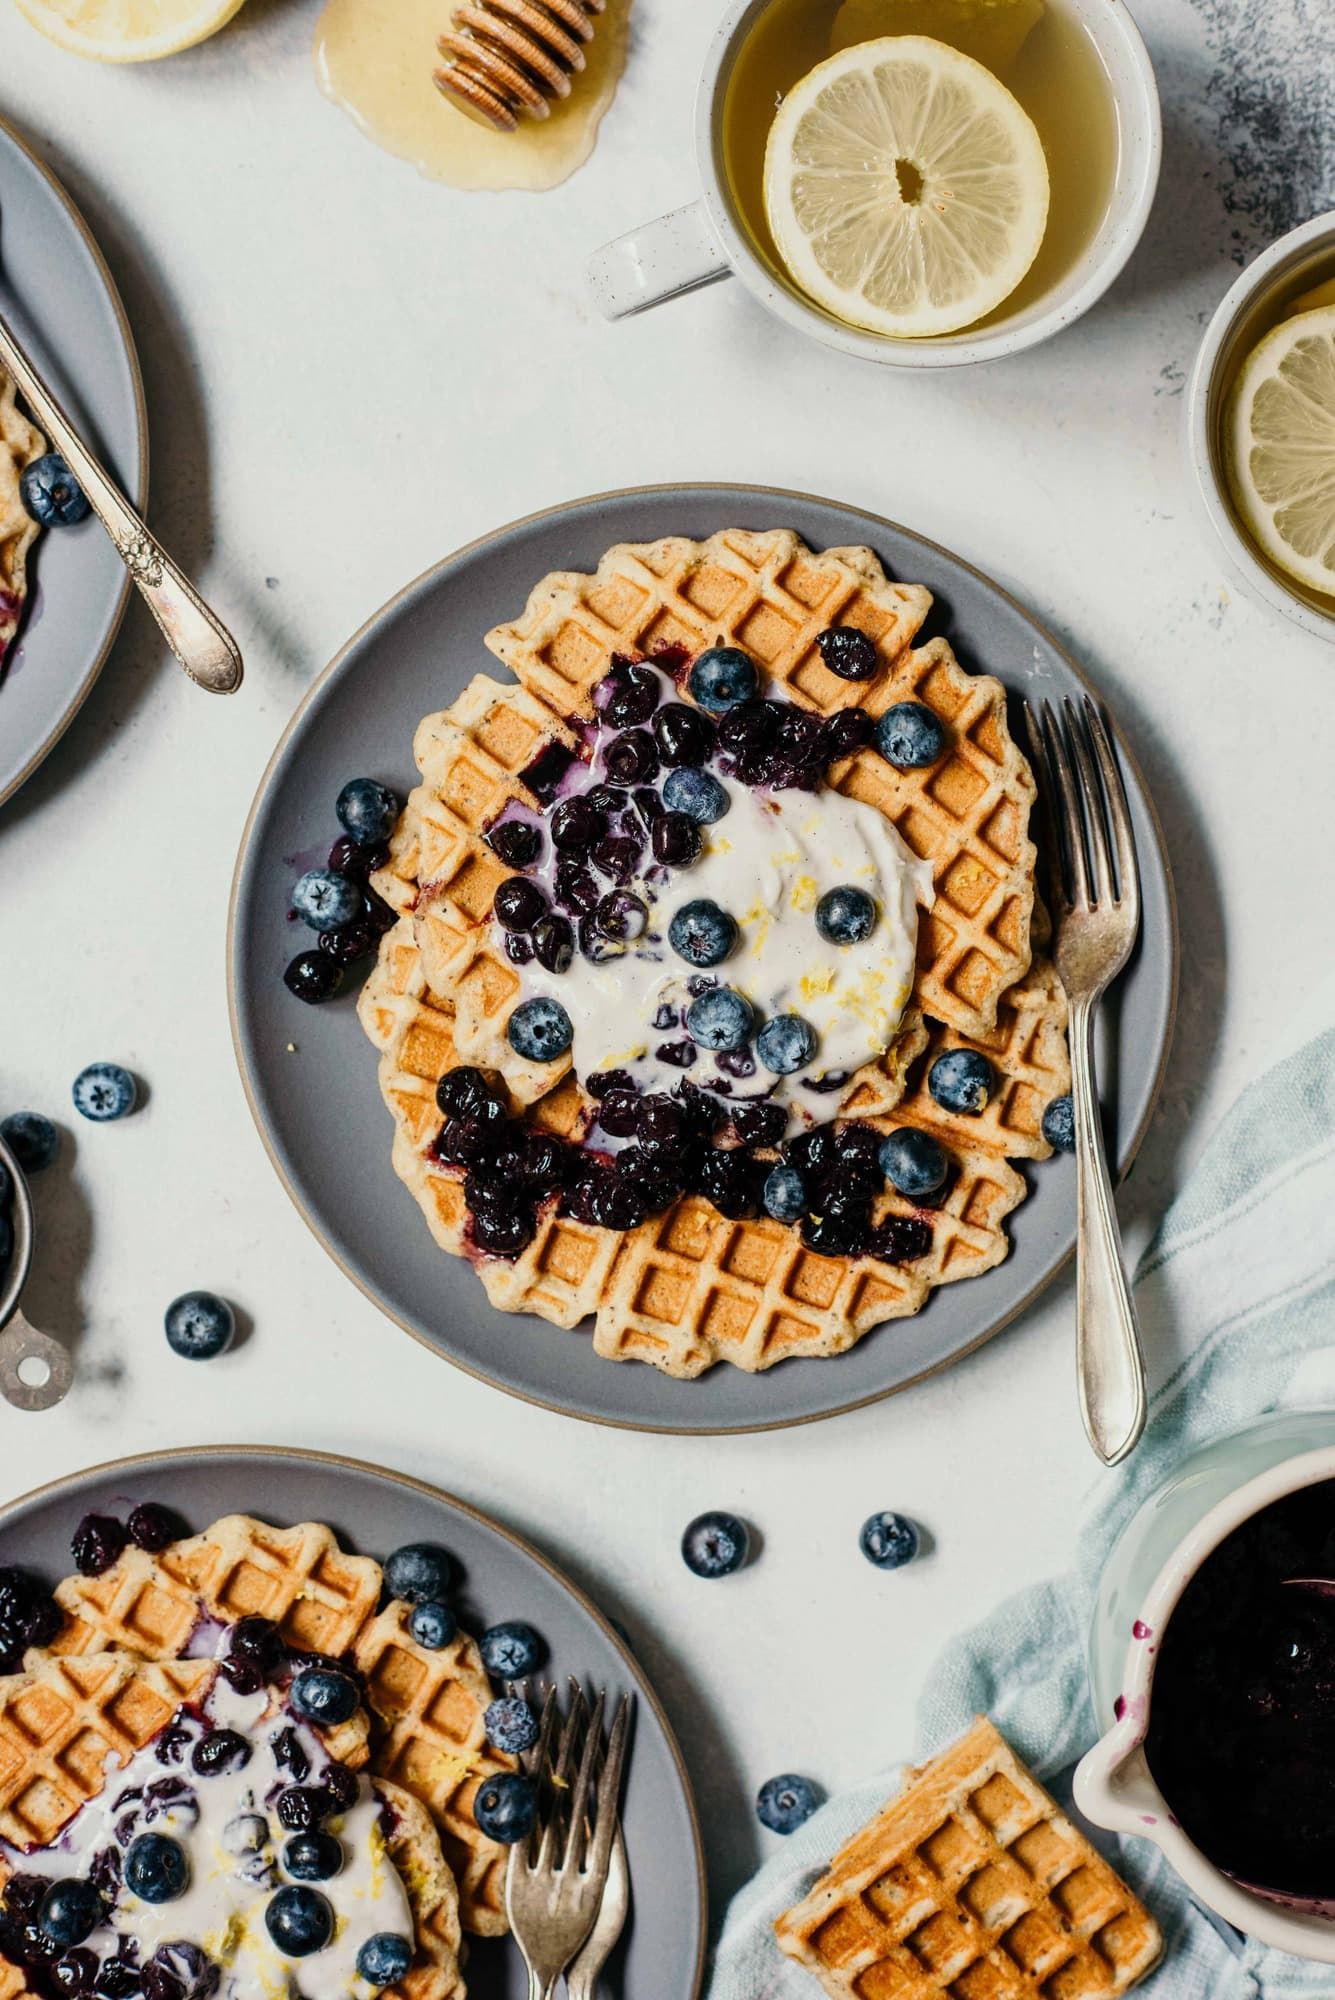 Overhead of lemon blueberry poppyseed waffles topped with whipped cream and blueberries on a white background